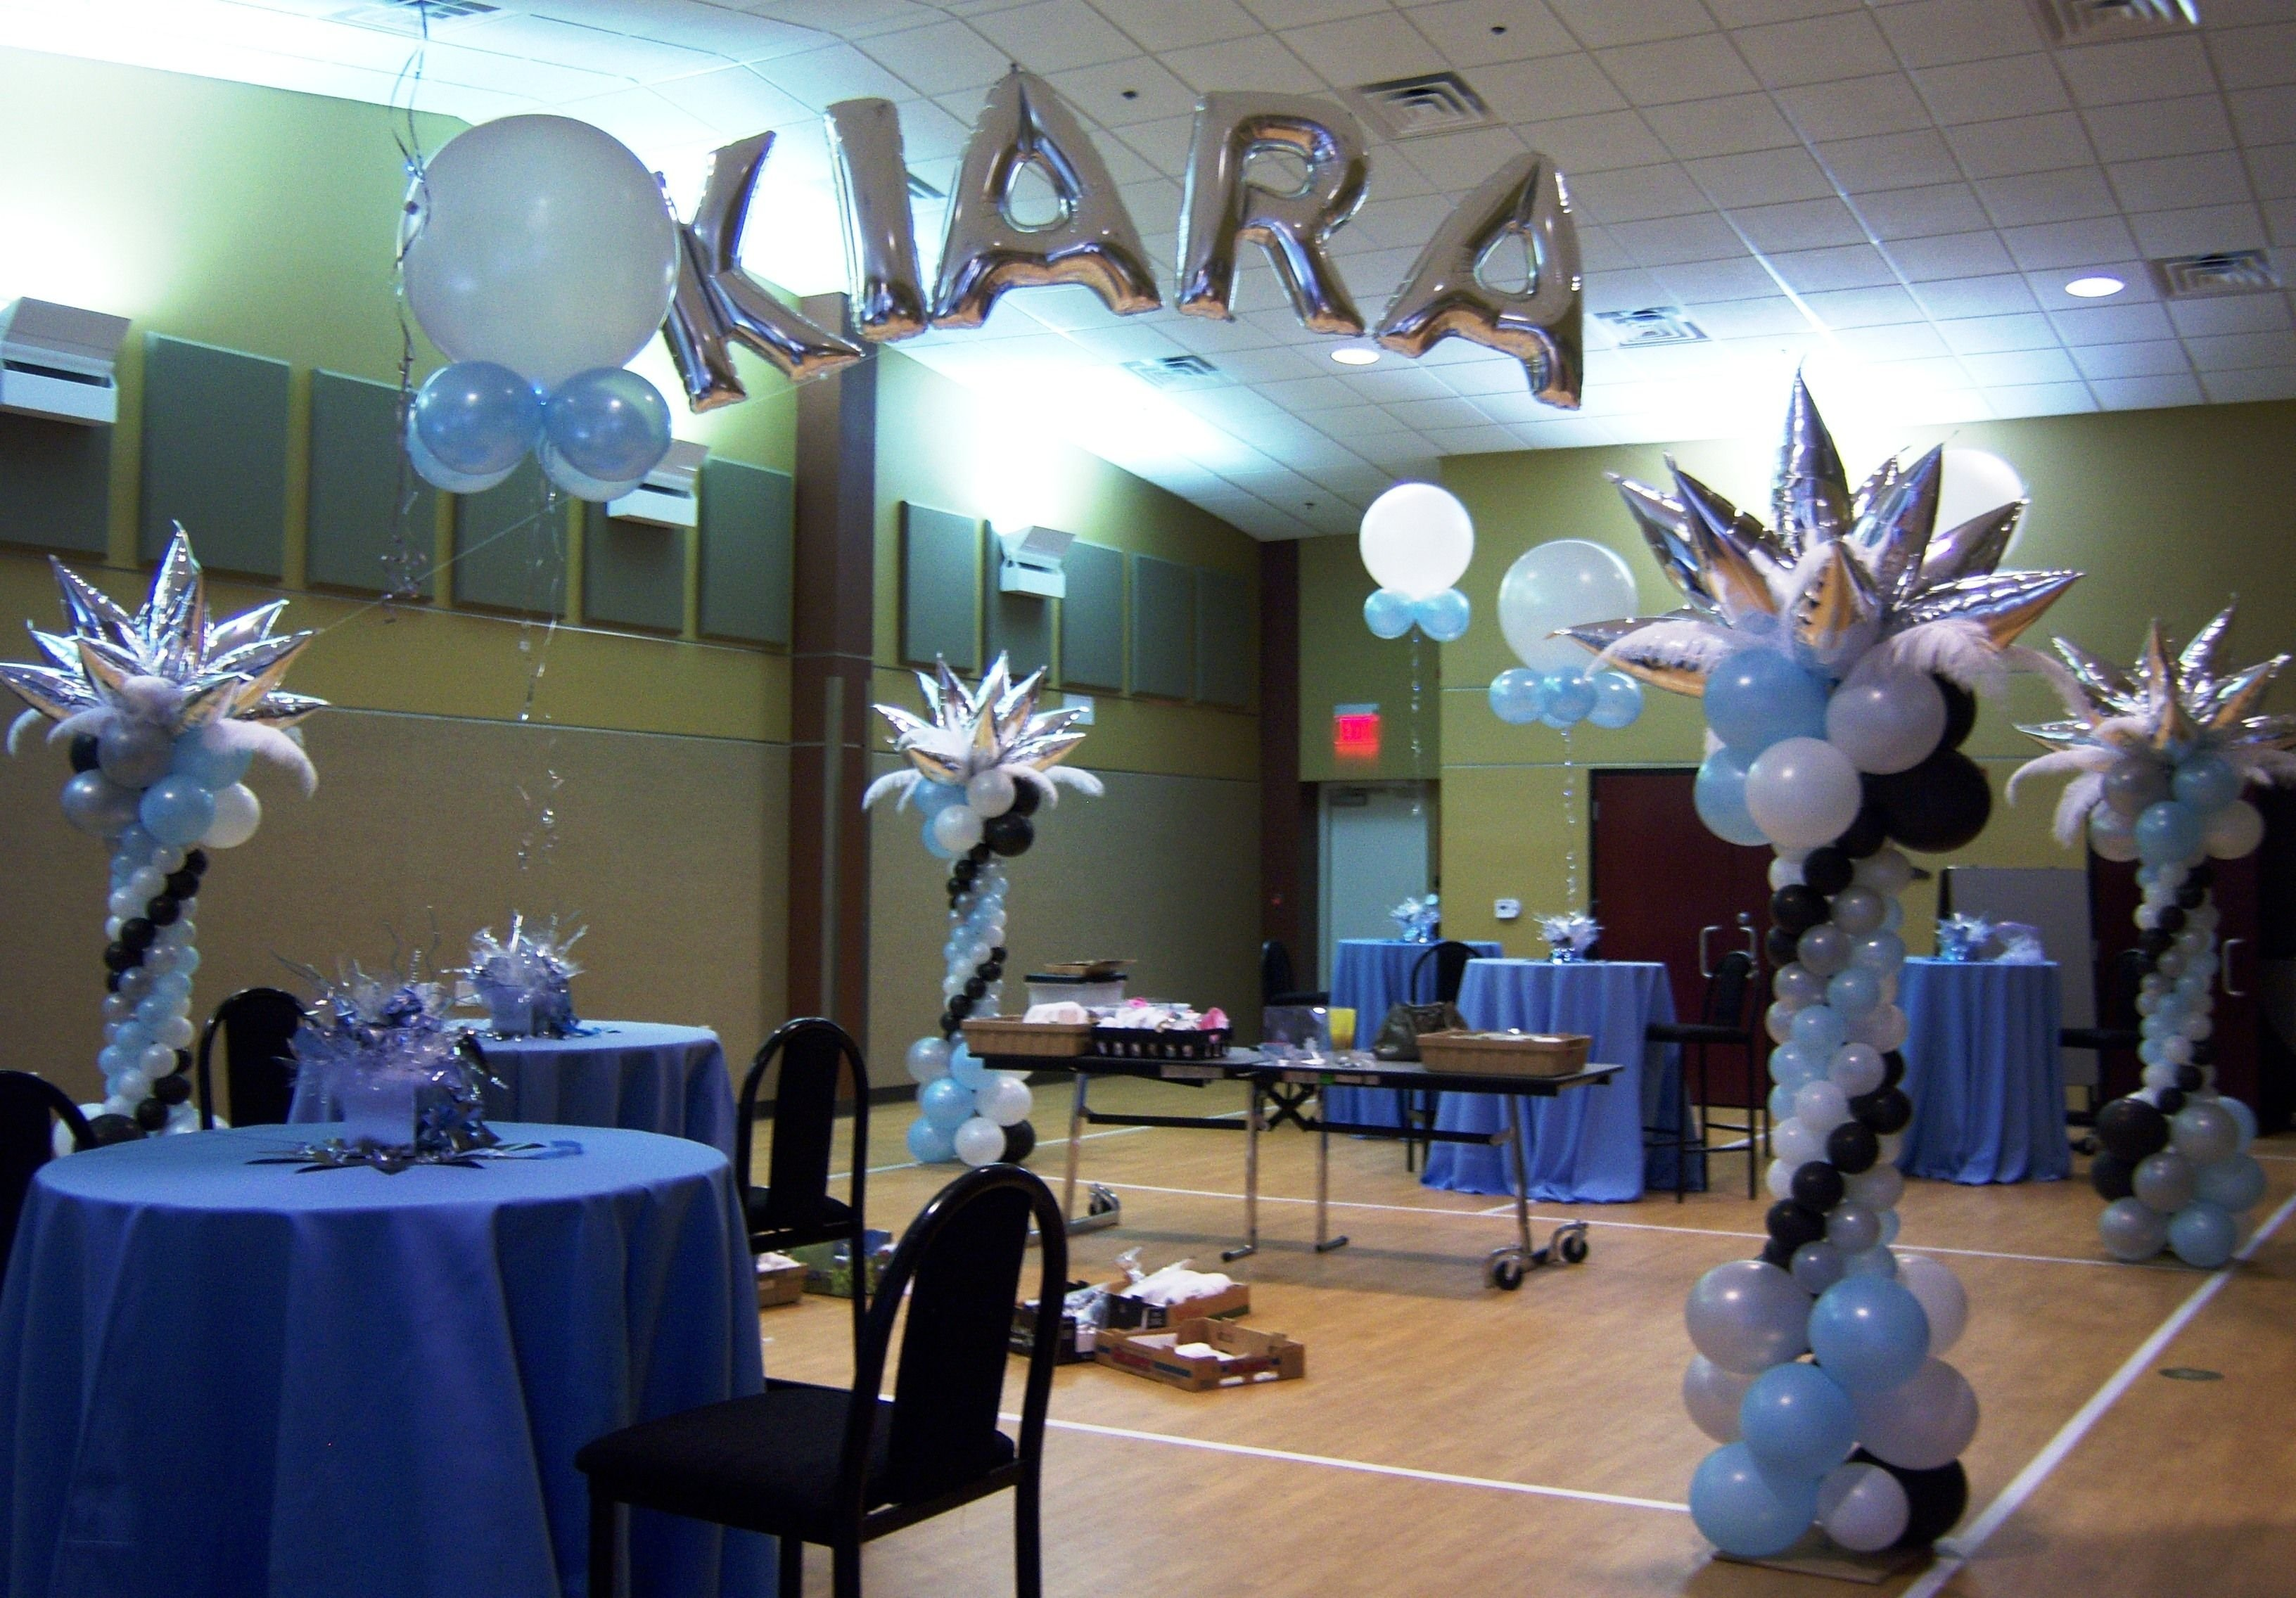 10 Attractive Sweet 16 Party Ideas For Boys cool balloon decorations for sweet 16 party ideas 16th birthday 1 2021